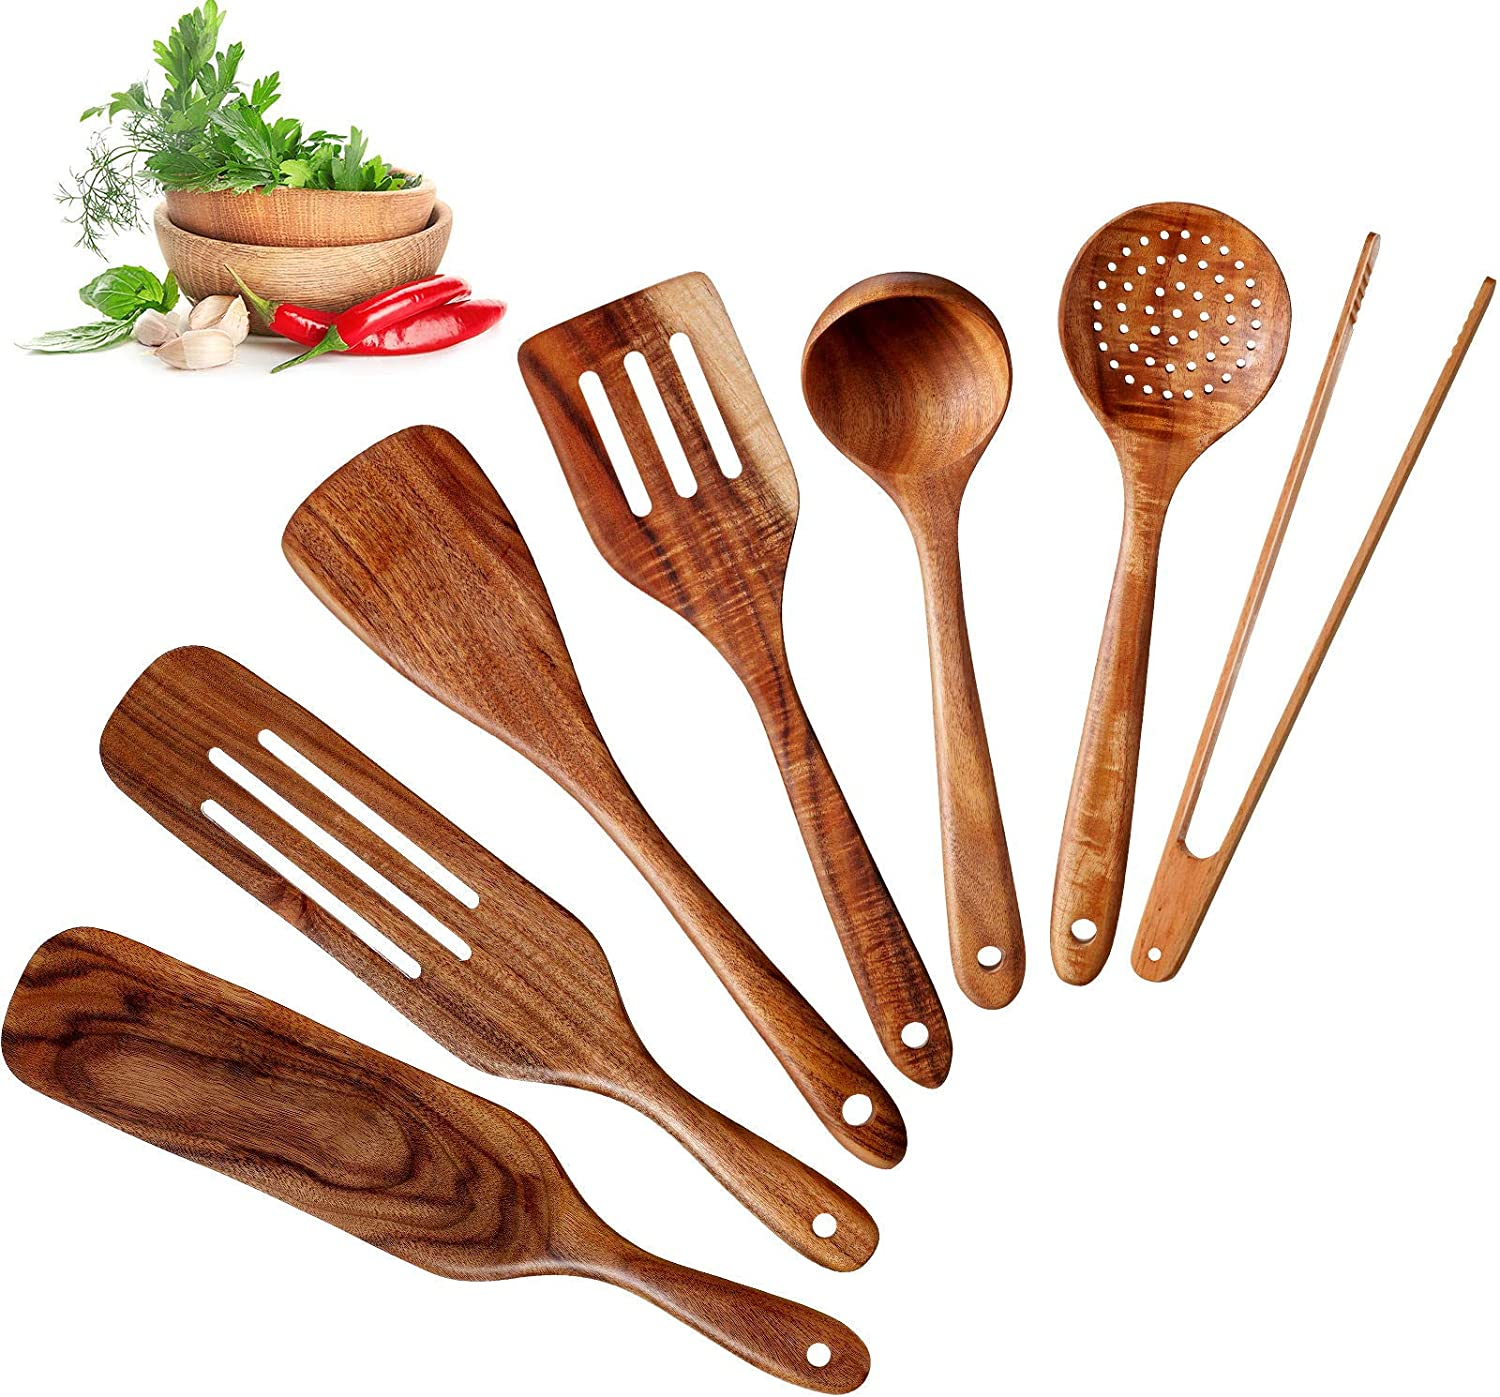 7 Pieces Spurtle Sets Wooden Spatulas Teak Kitchen utensils Set Heat Resistant Wood Skimmer Scoop Food Tong Non Stick Spurtles Slotted Spatula Ladle Colander with Hanging Holes for Cooking Kitchen